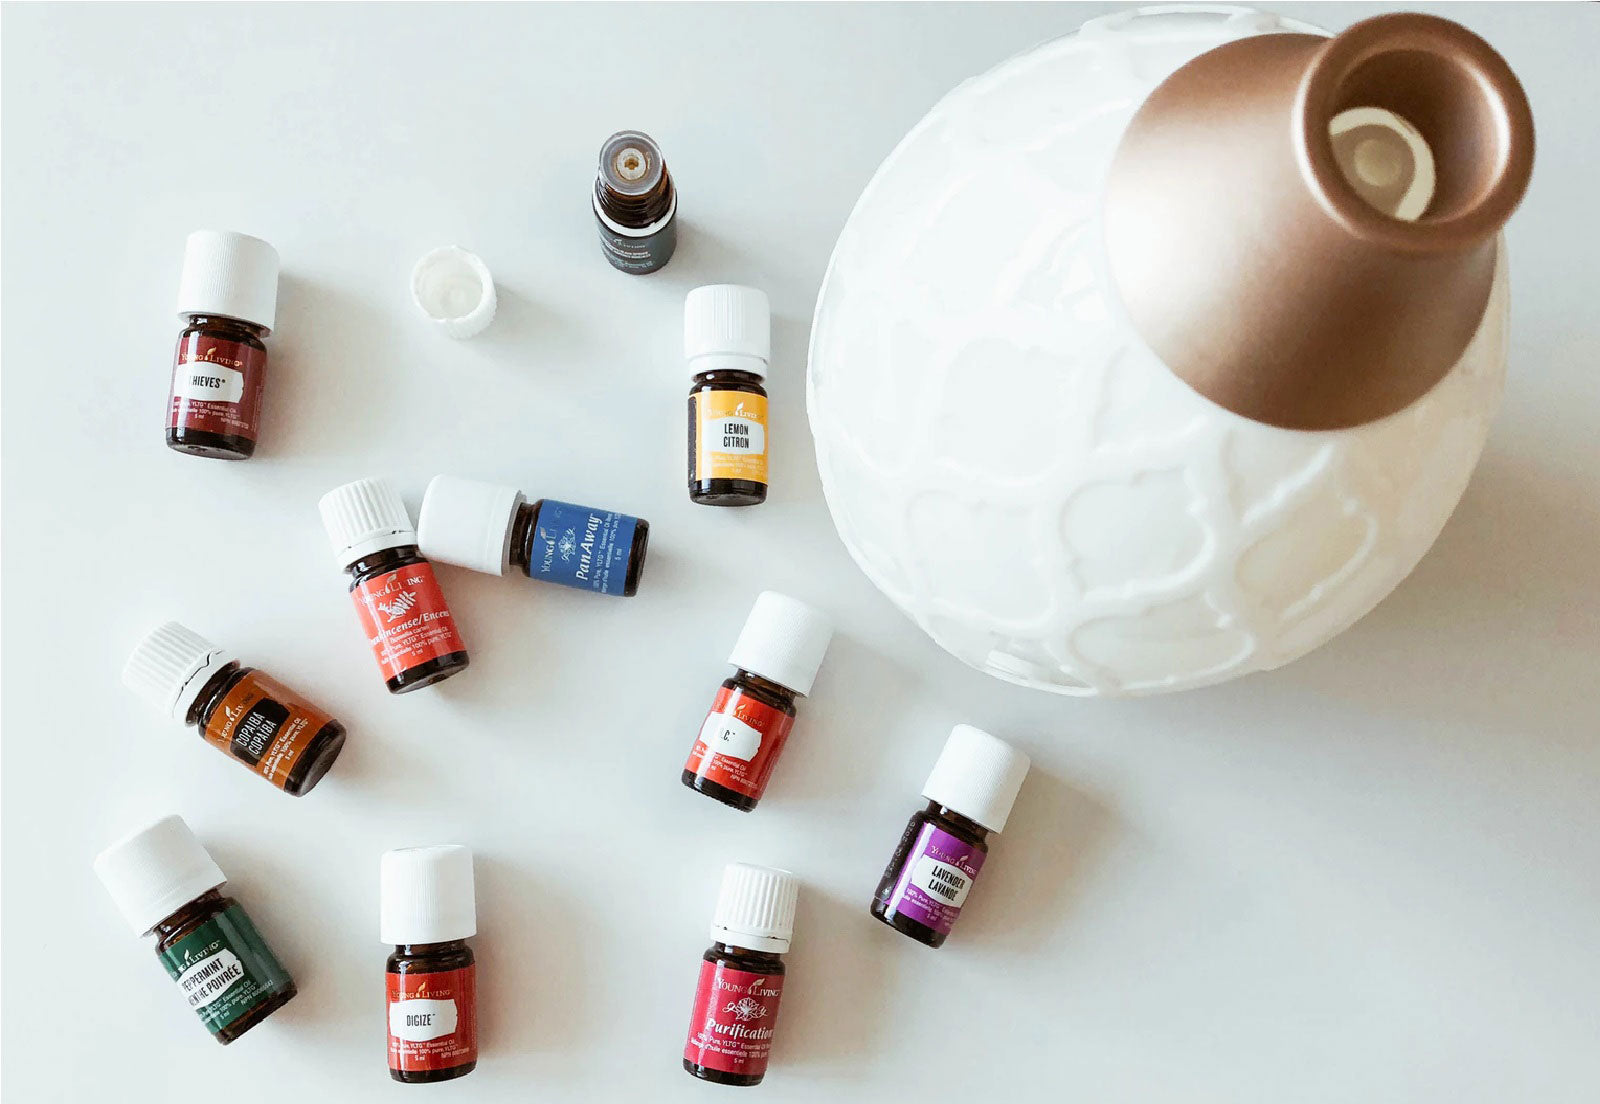 Many essential oil bottles and an oil diffuser